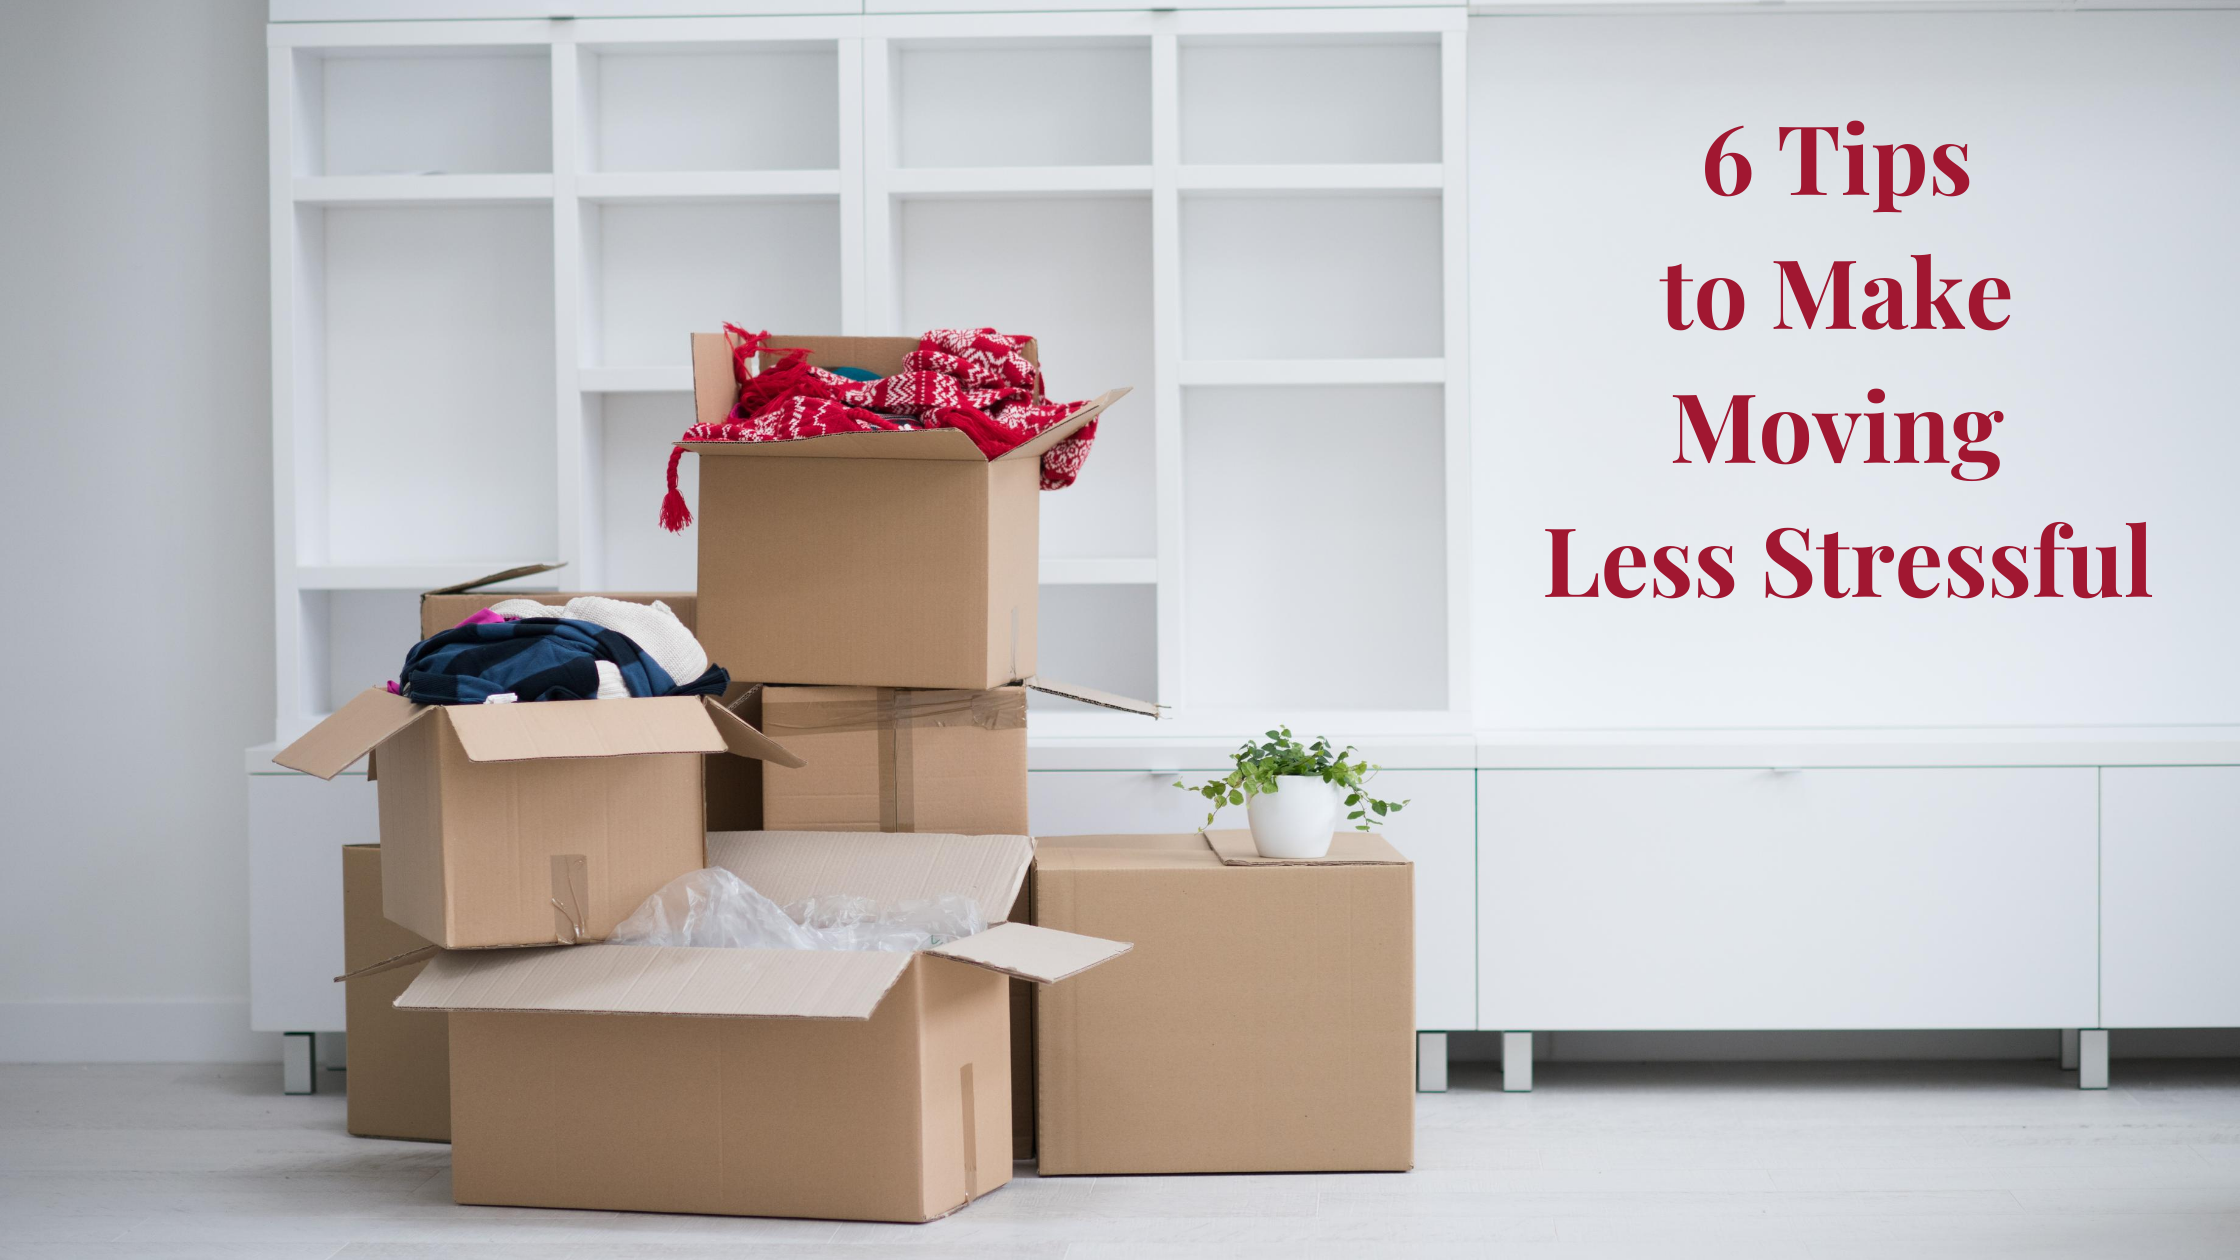 6 Tips to Make Moving Less Stressful